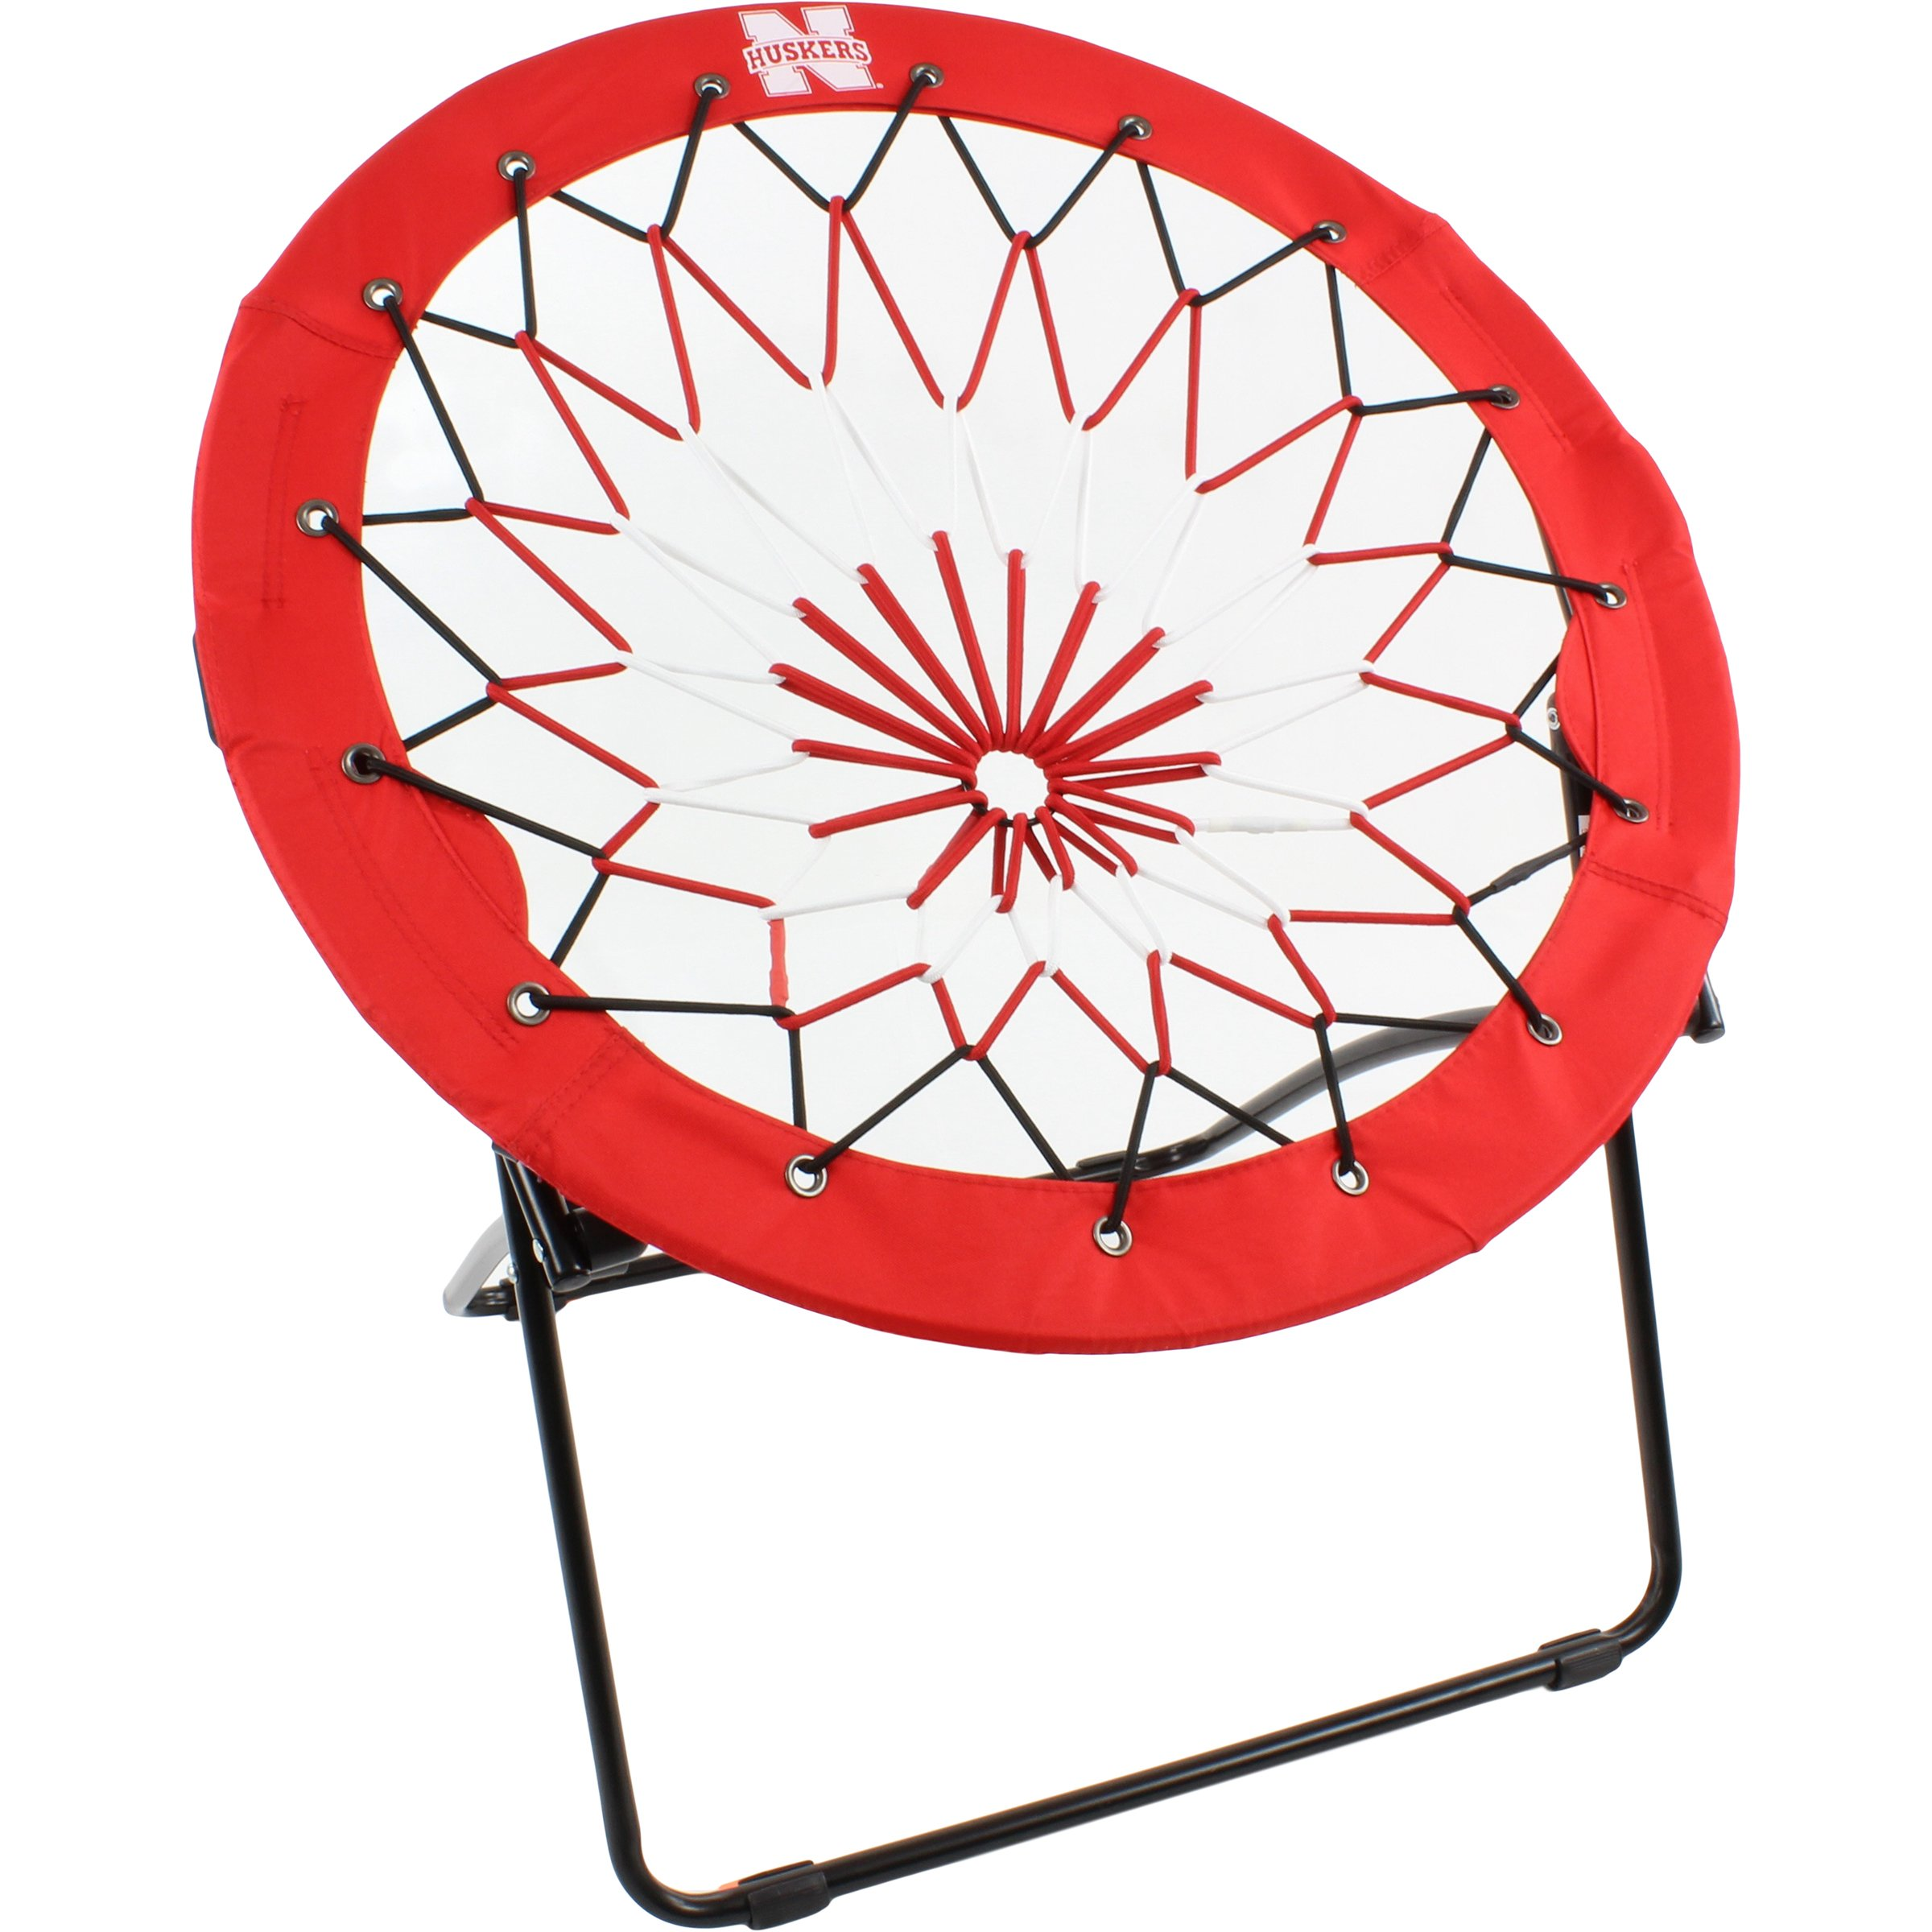 College Covers Nebraska Cornhuskers NCAA Bunjo Chair by College Covers